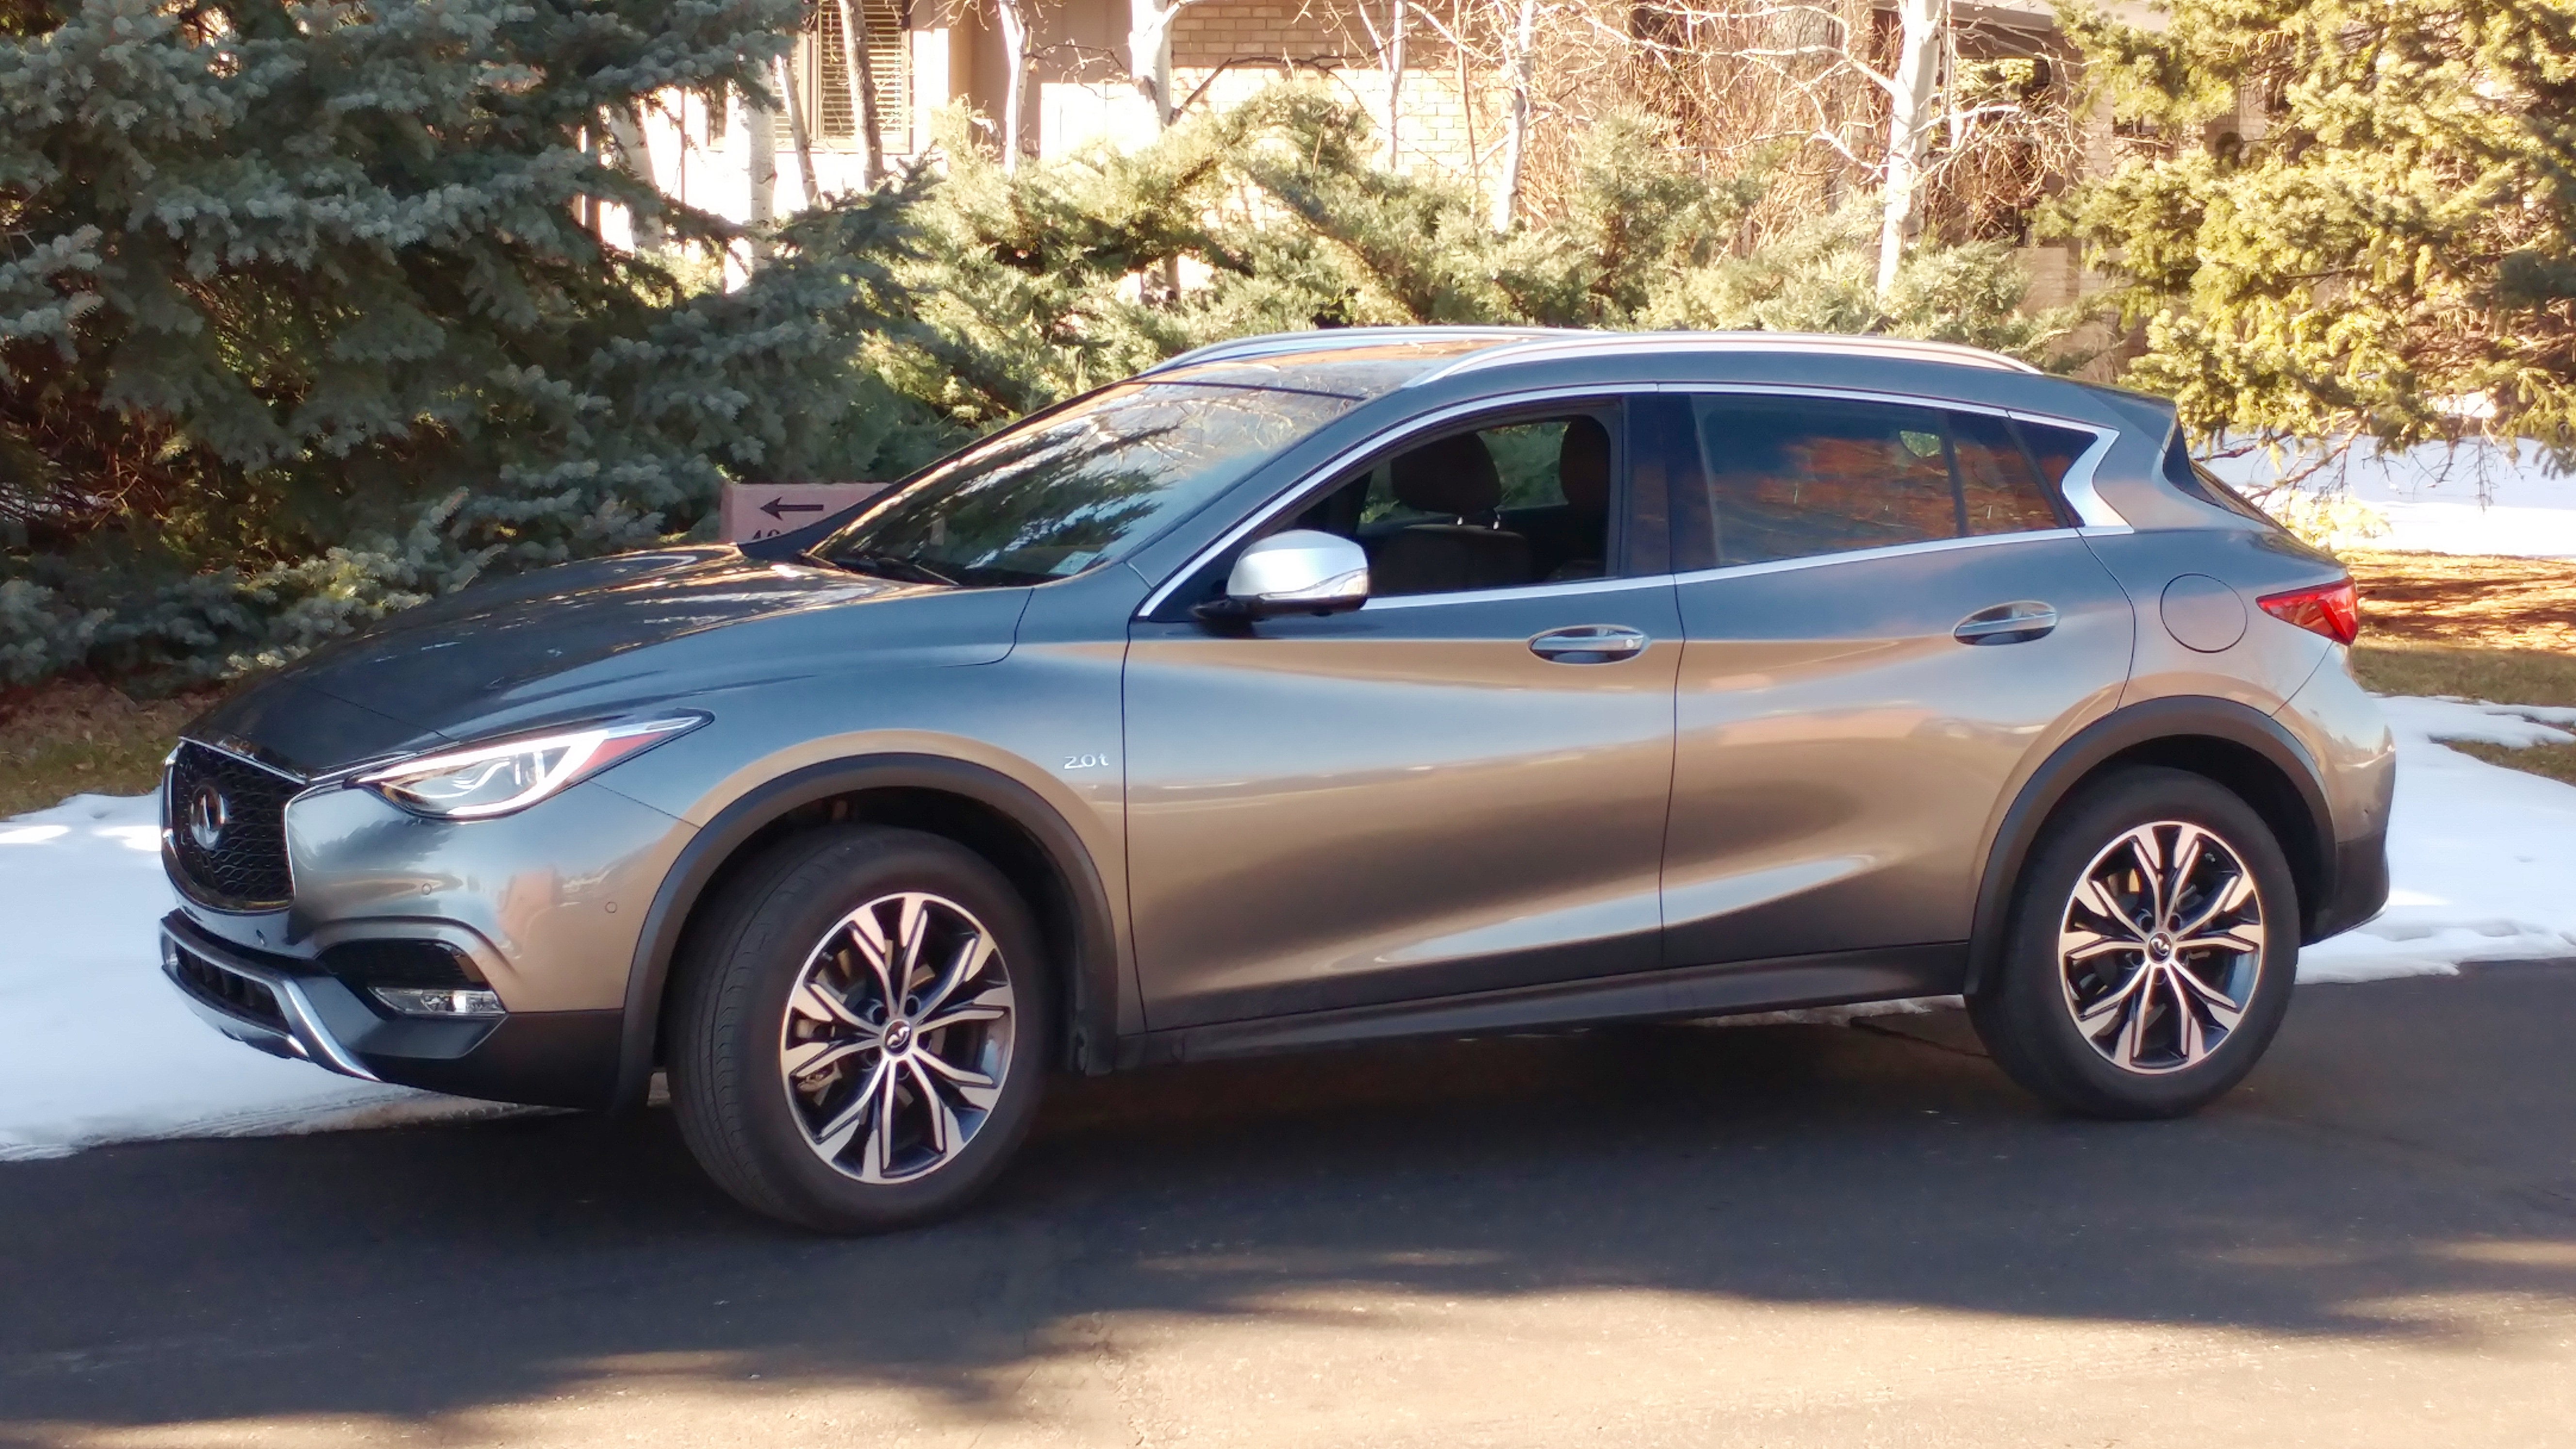 crossover reviews and infinity driver infiniti specs awd photos car price